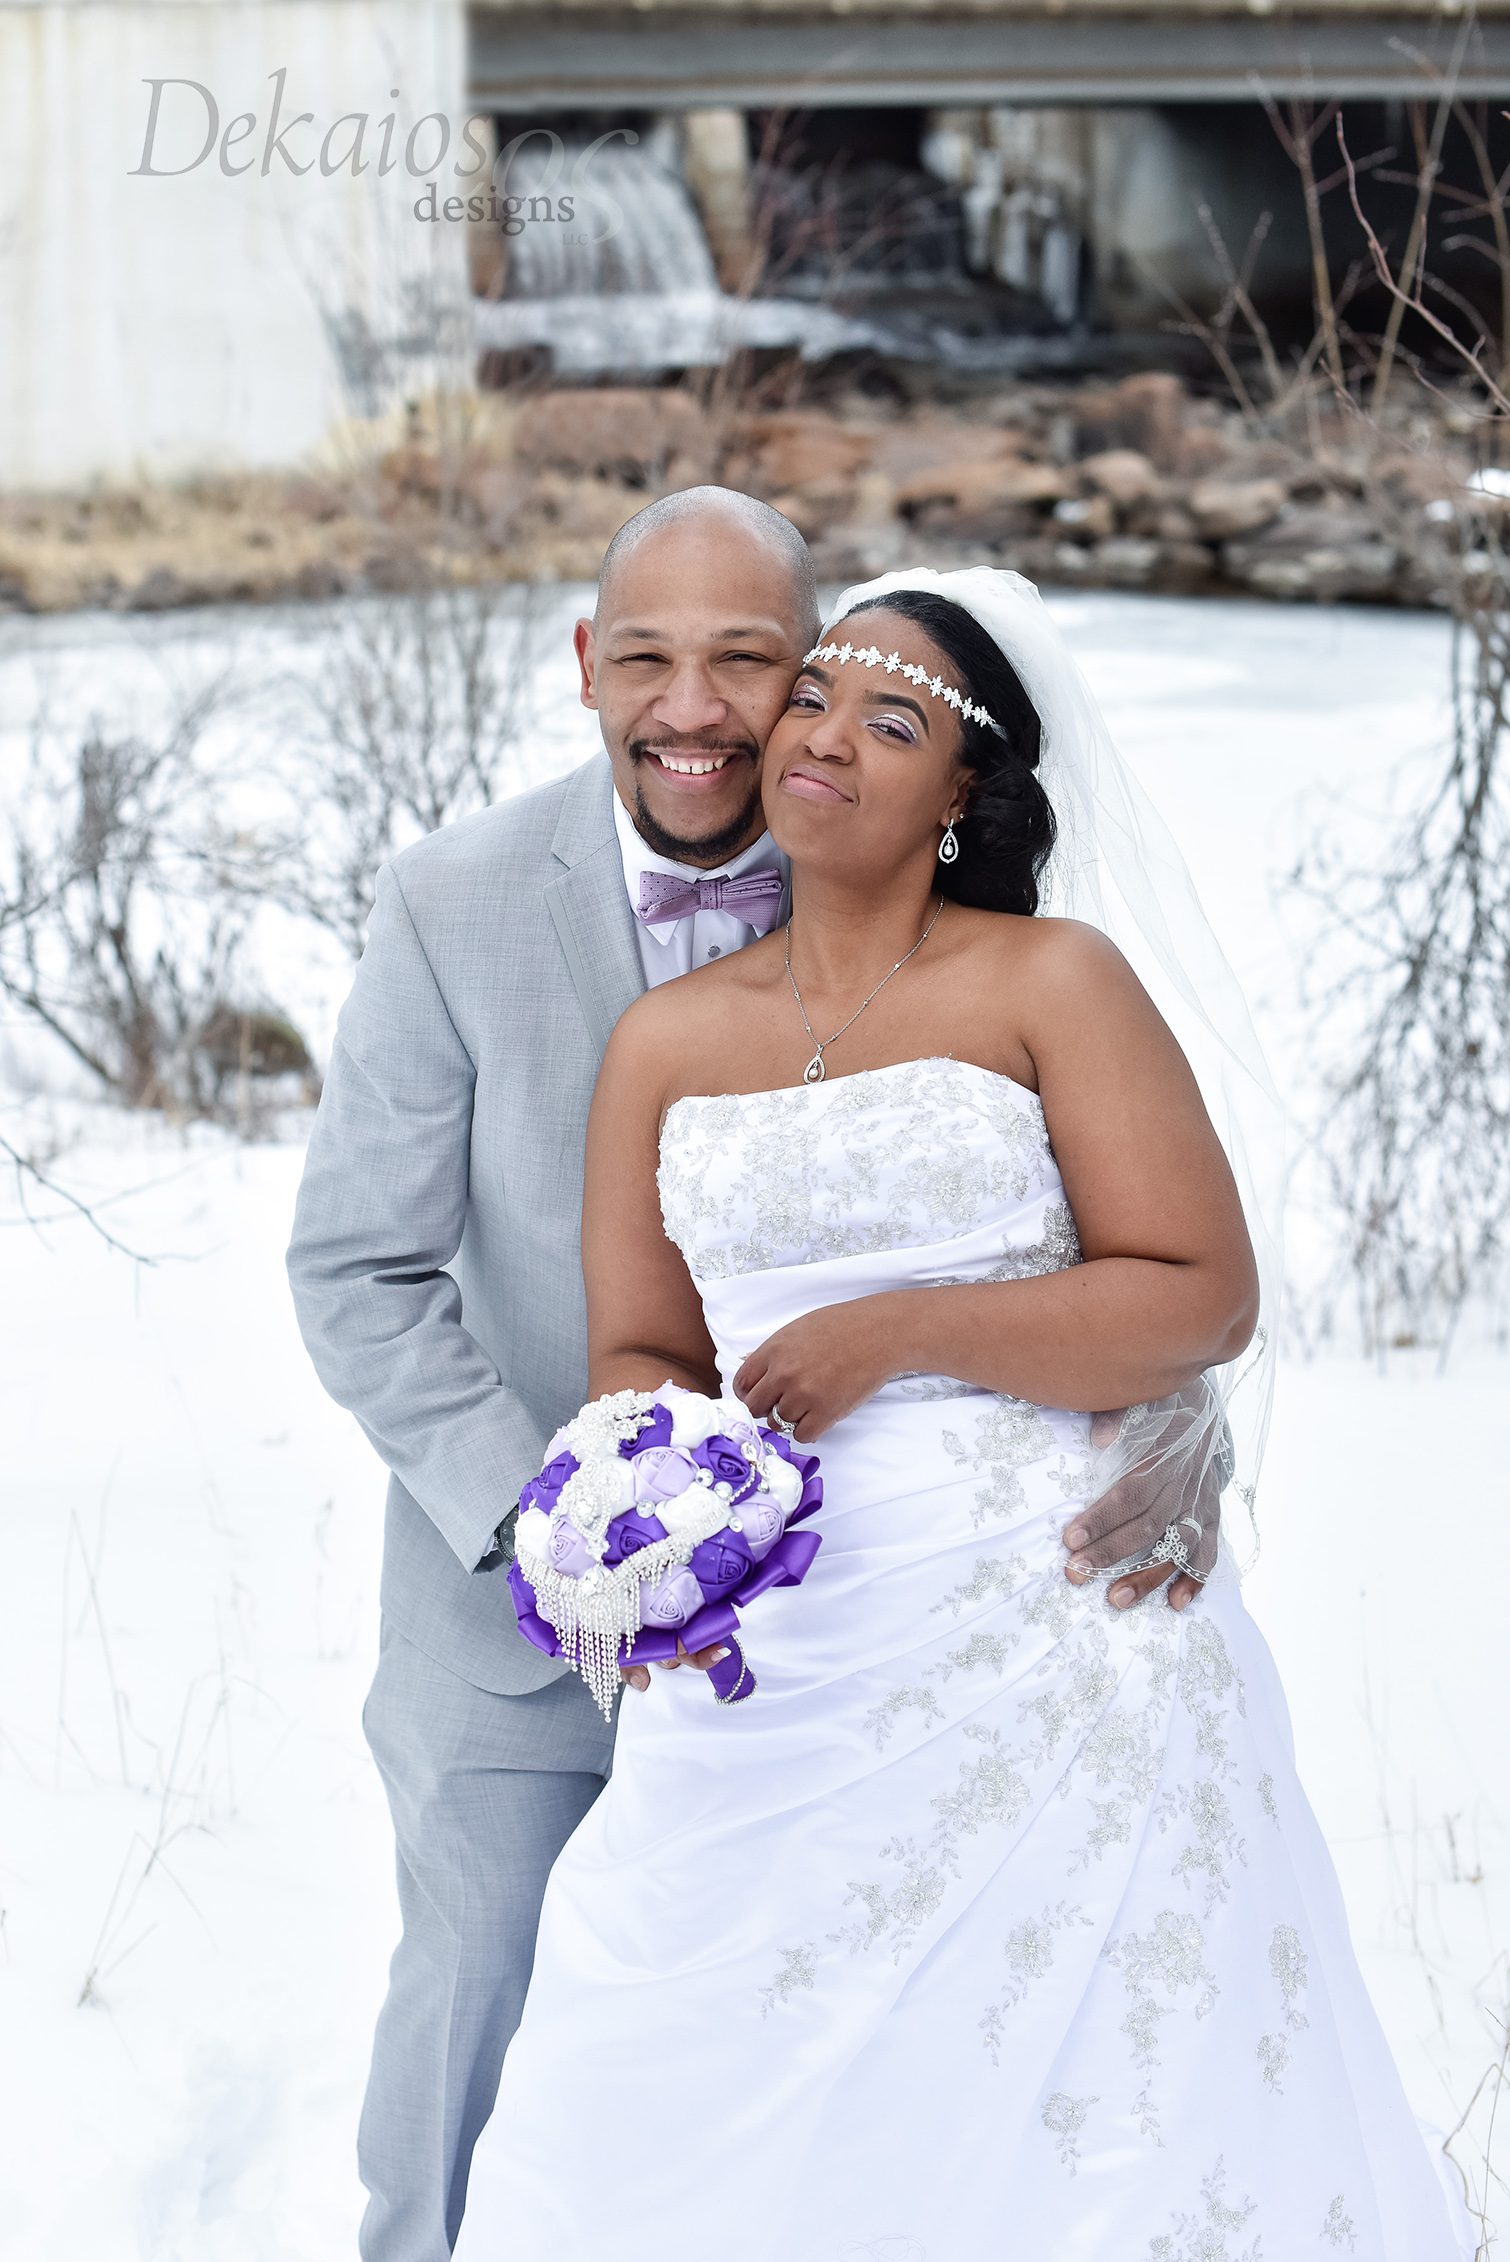 Nate and Reketa's snow filled wedding!